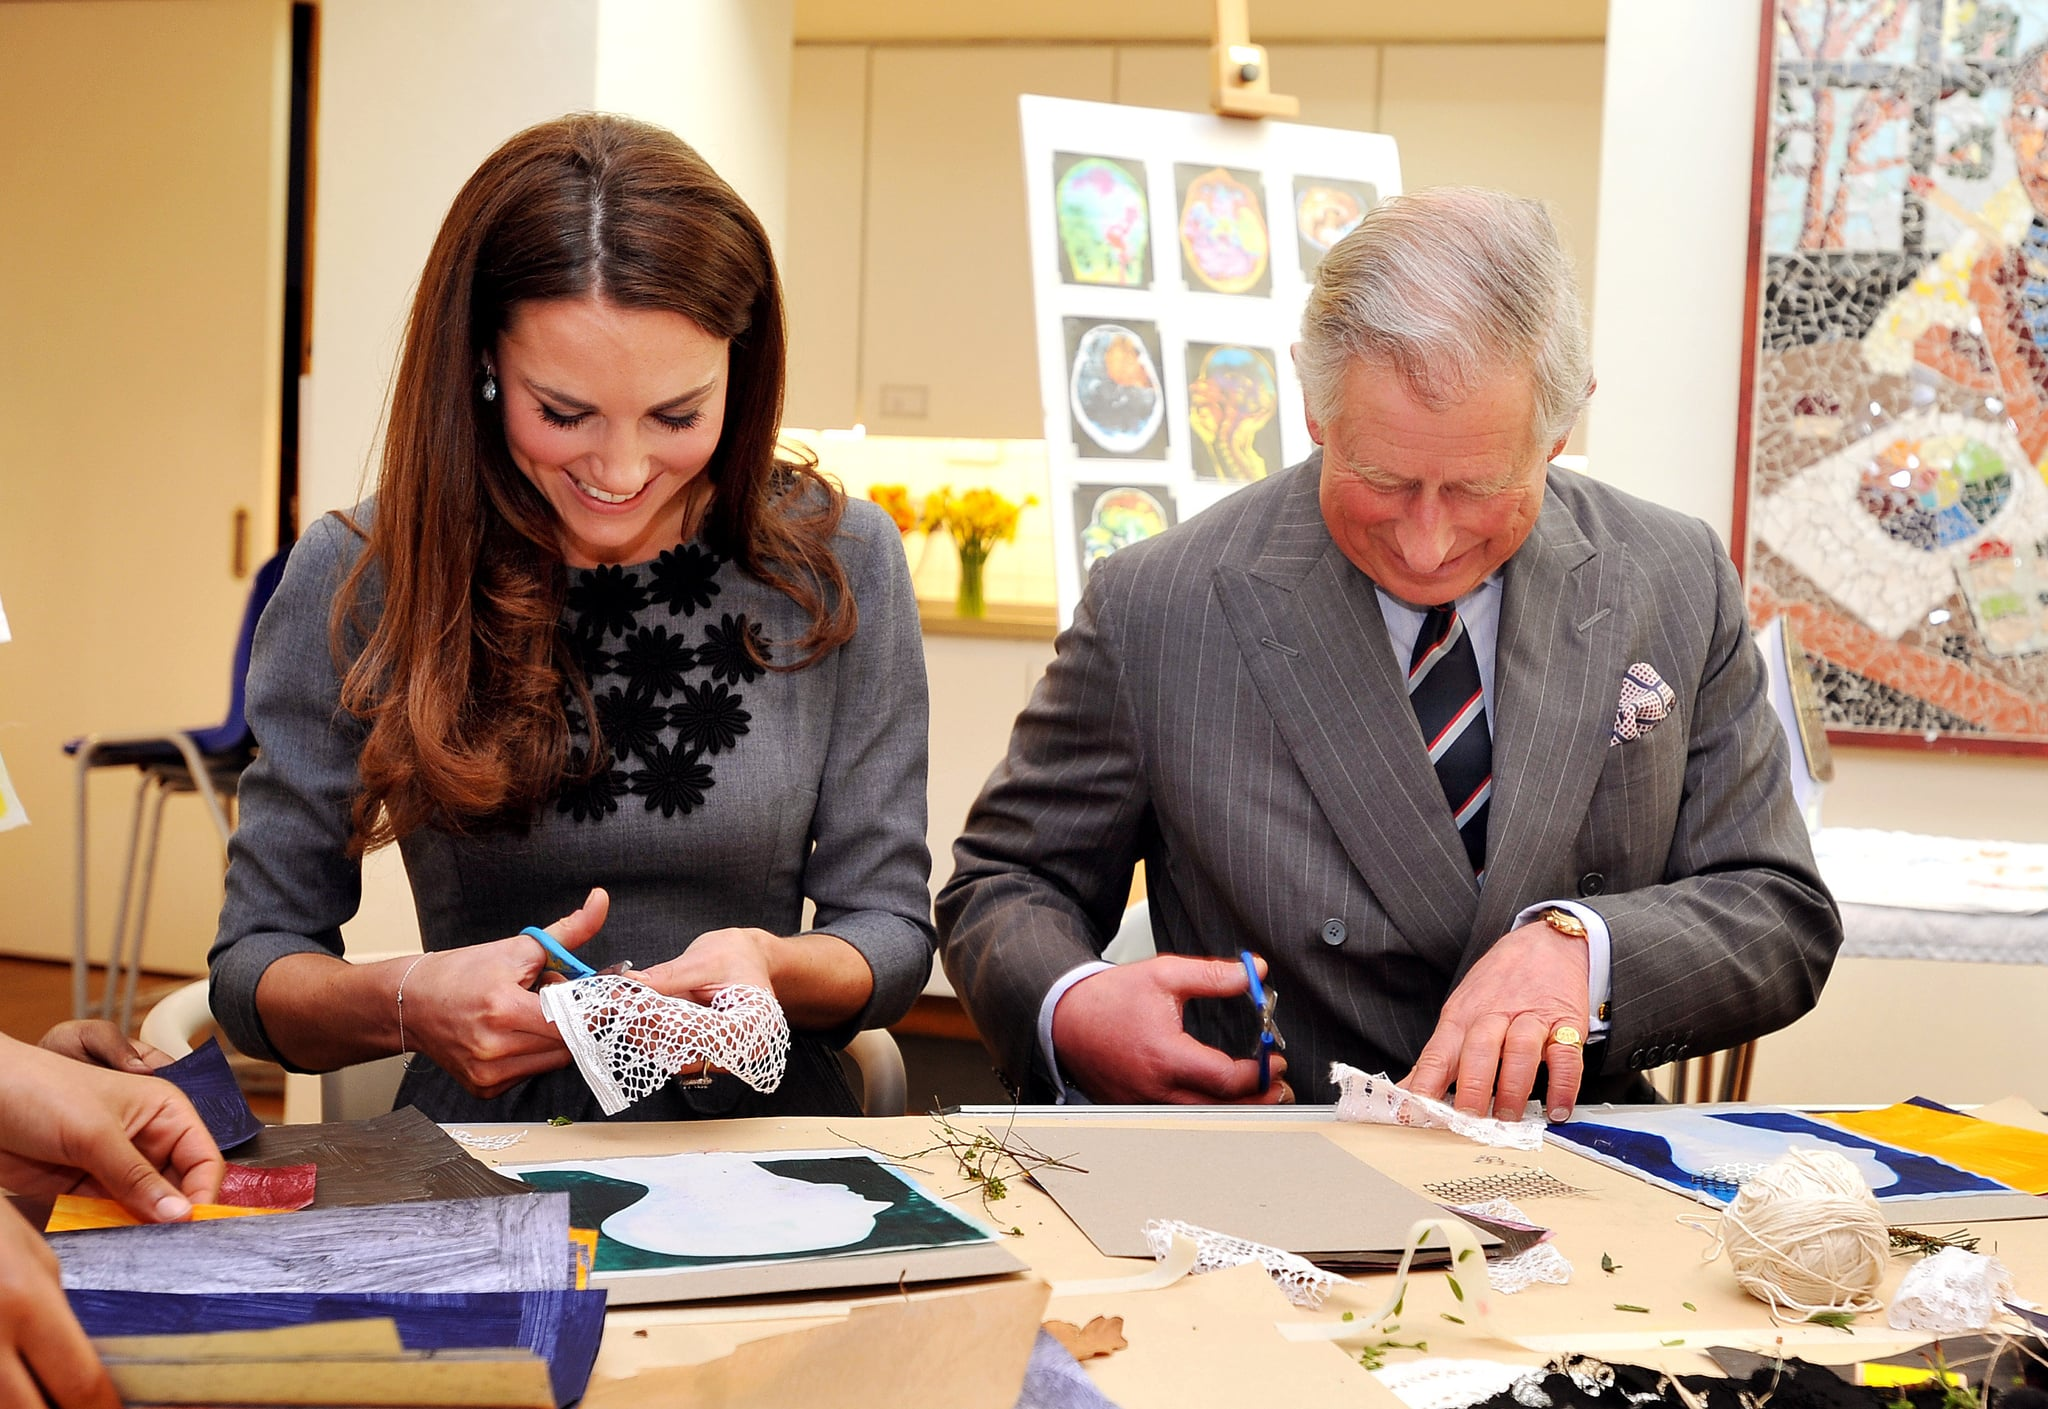 LONDON, UNITED KINGDOM - MARCH 15:  Catherine, Duchess of Cambridge and Prince Charles, Prince of Wales join children producing artwork during a visit to the Dulwich Picture Gallery on March 15, 2012 in London, England. The Duchess of Cambridge joined her parents-in-law Prince Charles, Prince of Wales and Camilla, Duchess of Cornwall on a royal visit to the gallery to celebrate their shared love of the arts and see work done by the Prince's Foundation for Children and the Arts. (Photo by Rota/Anwar Hussein Collection/Getty Images)